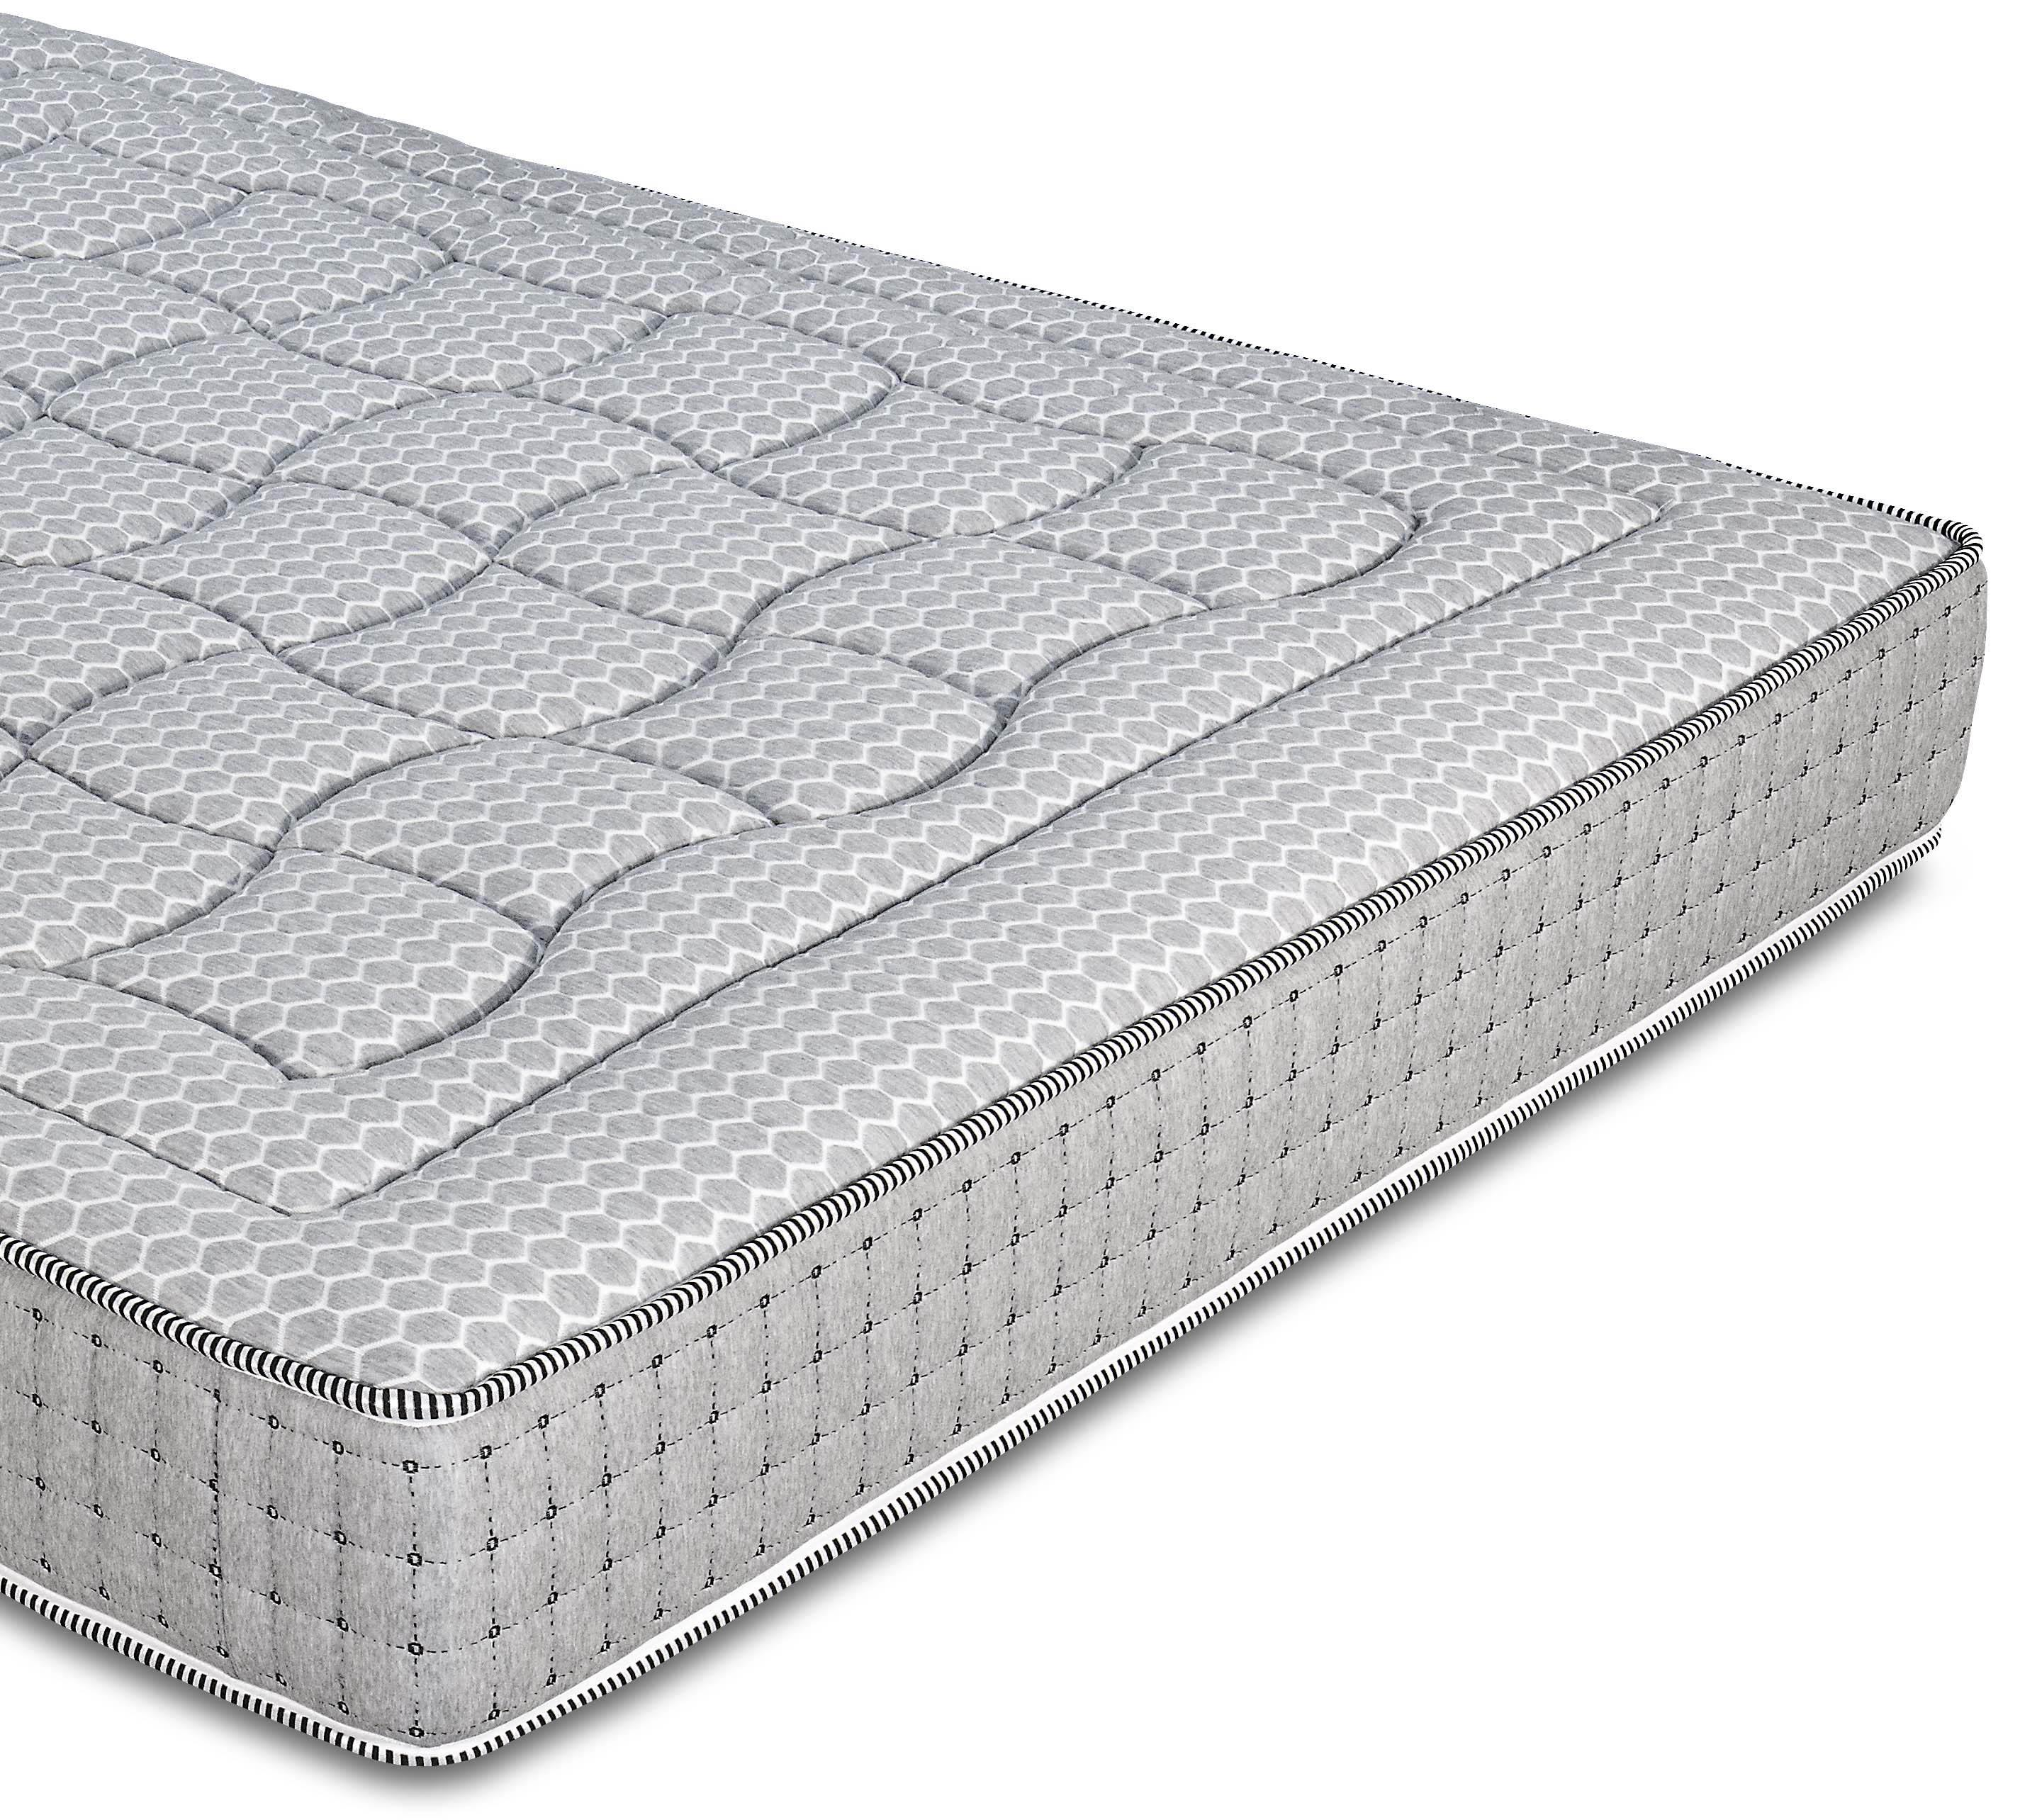 Materasso 100% Lattice con Cocco e Waterfoam | Latex Cocco Night | Prezzo a partire da